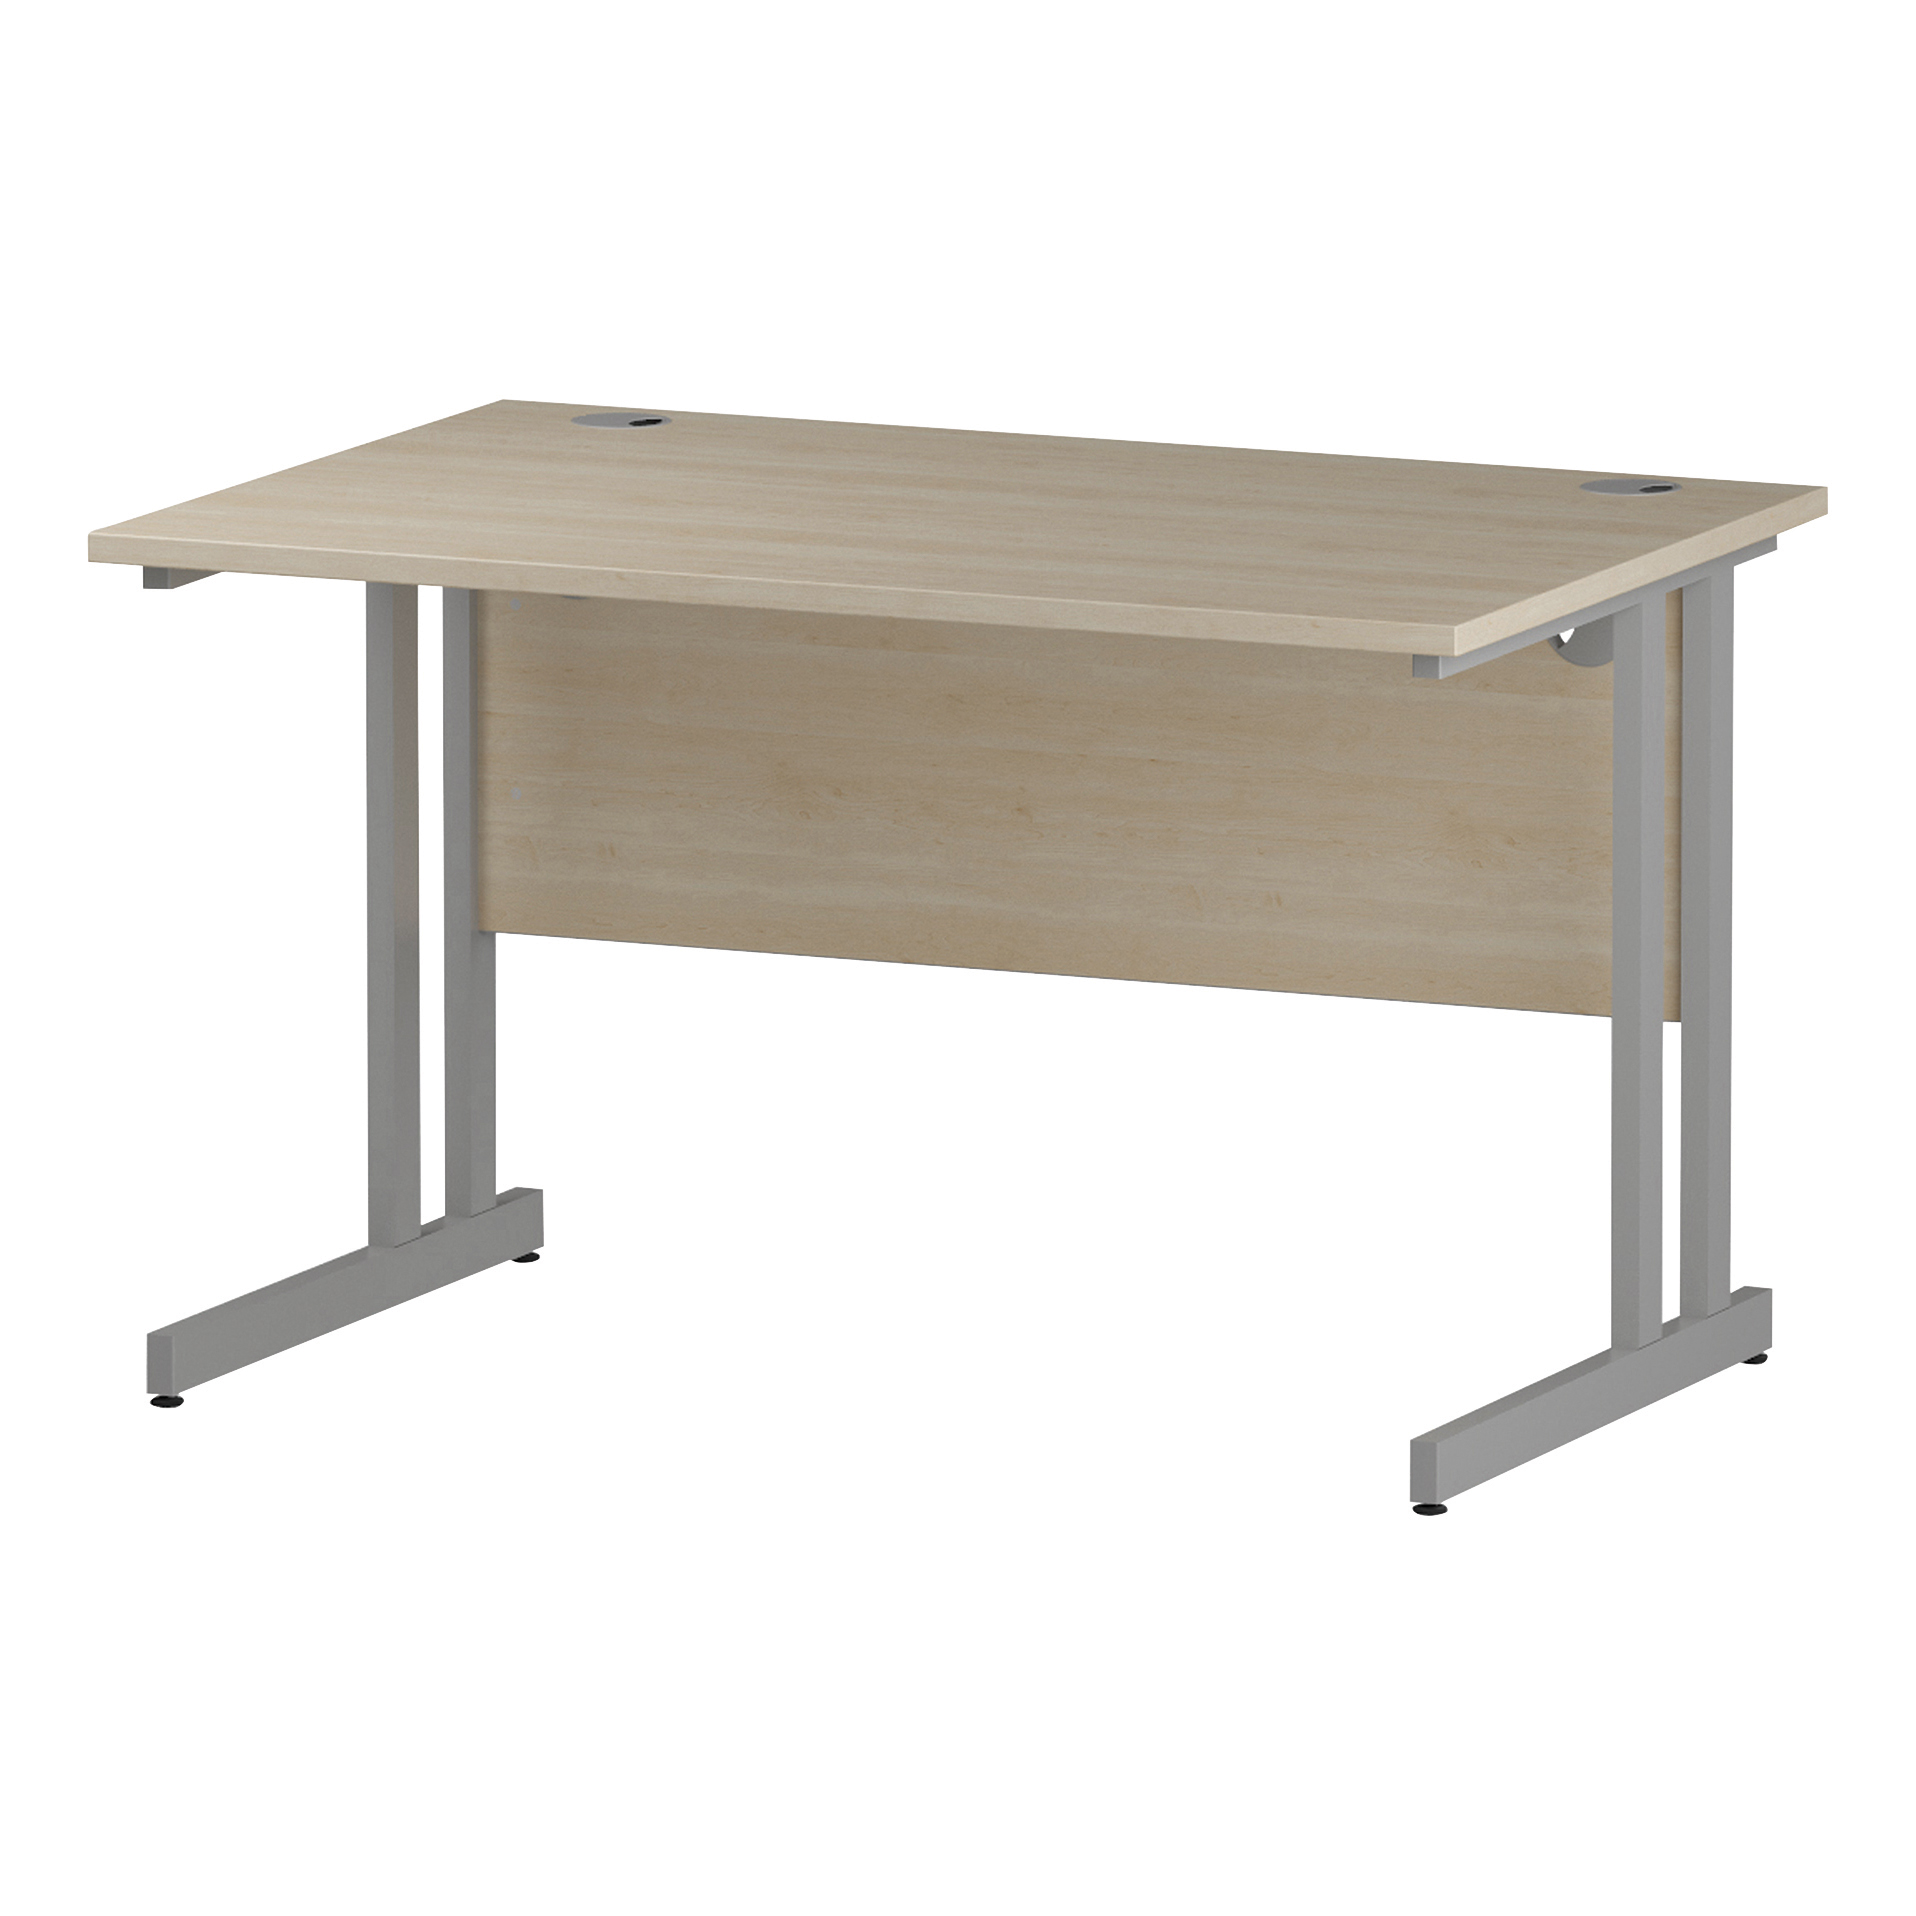 Trexus Rectangular Desk Cantilever Leg 1200mm Maple